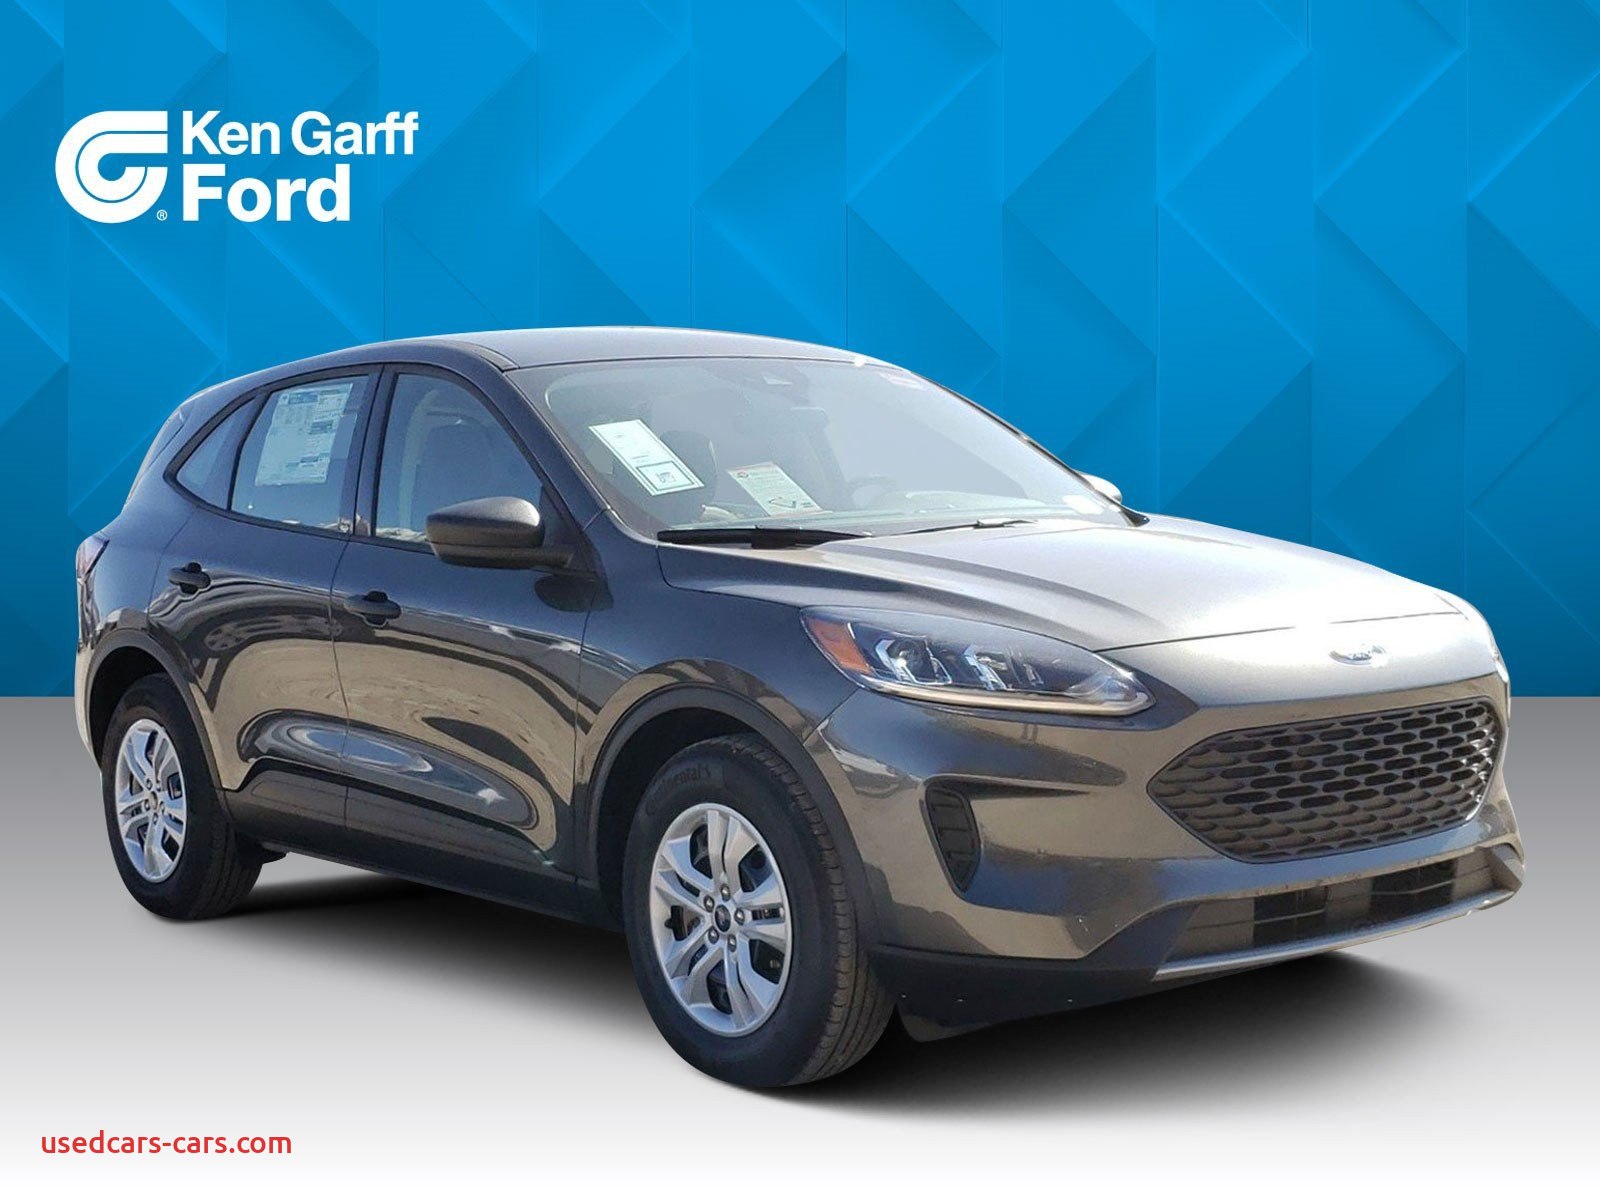 2020 ford Escape Cost Lovely New 2020 ford Escape S Fwd Sport Utility